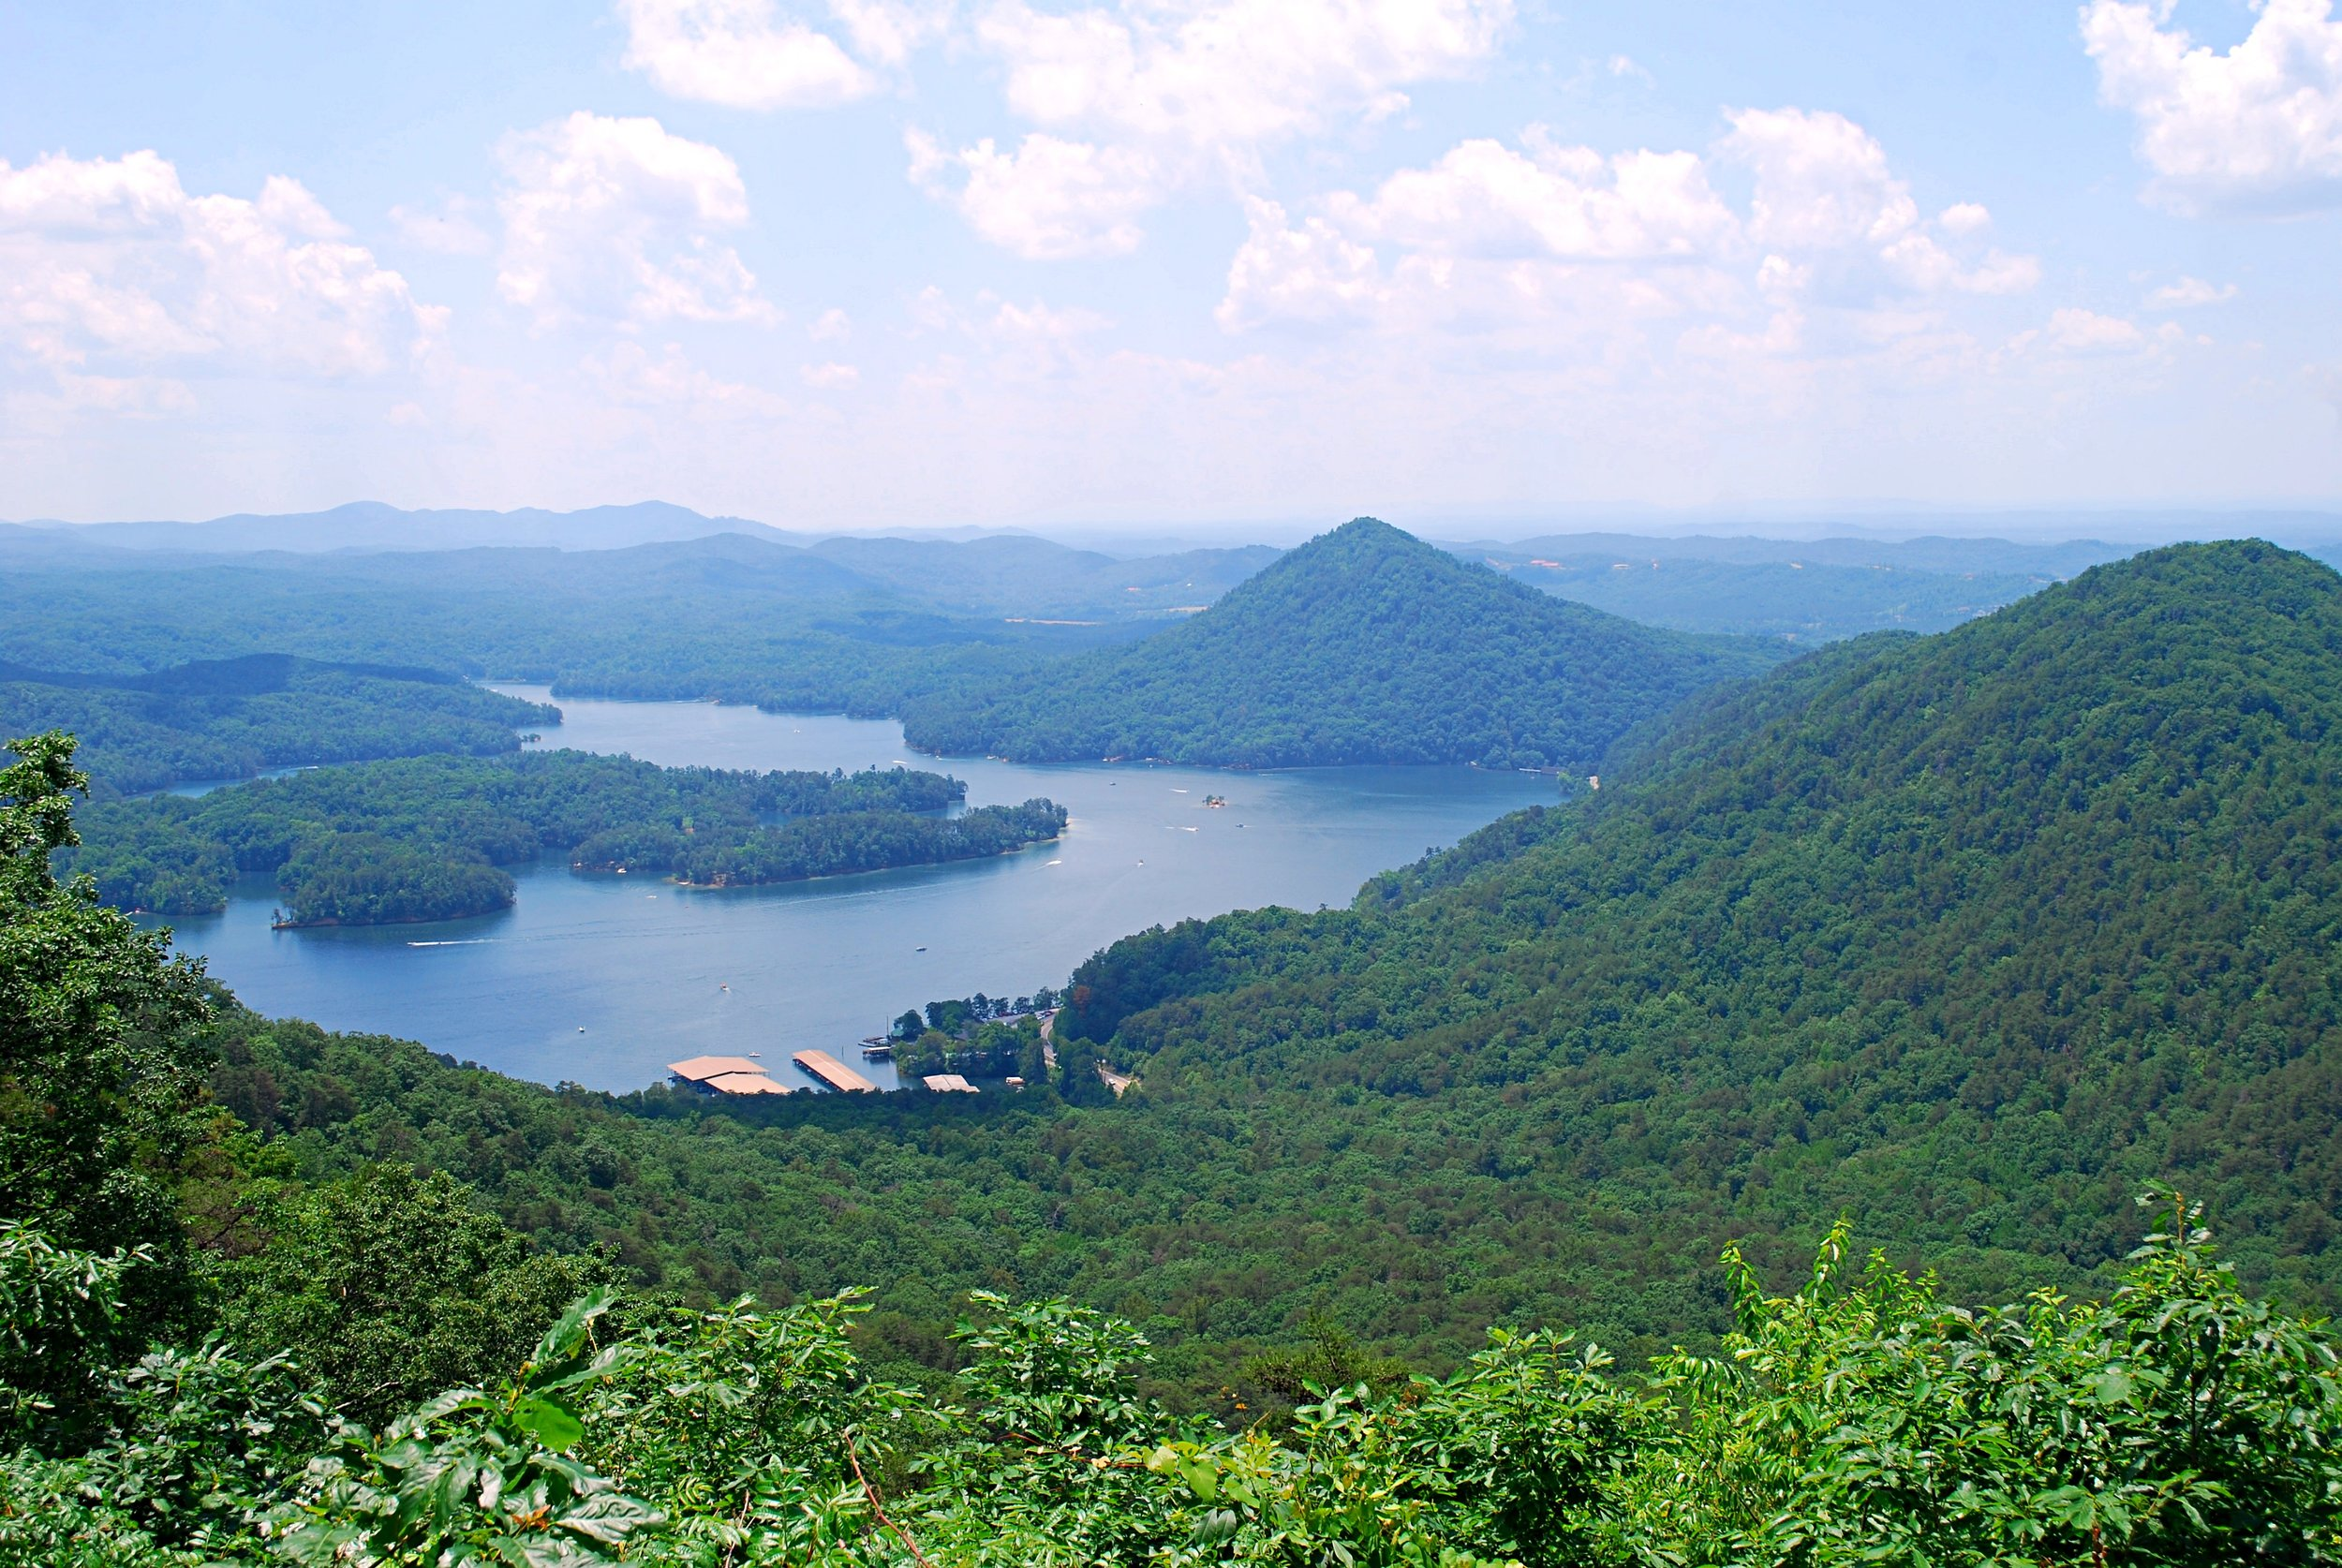 View of Parksville Lake from Chilhowee Mountain. Photo: Bob Butters